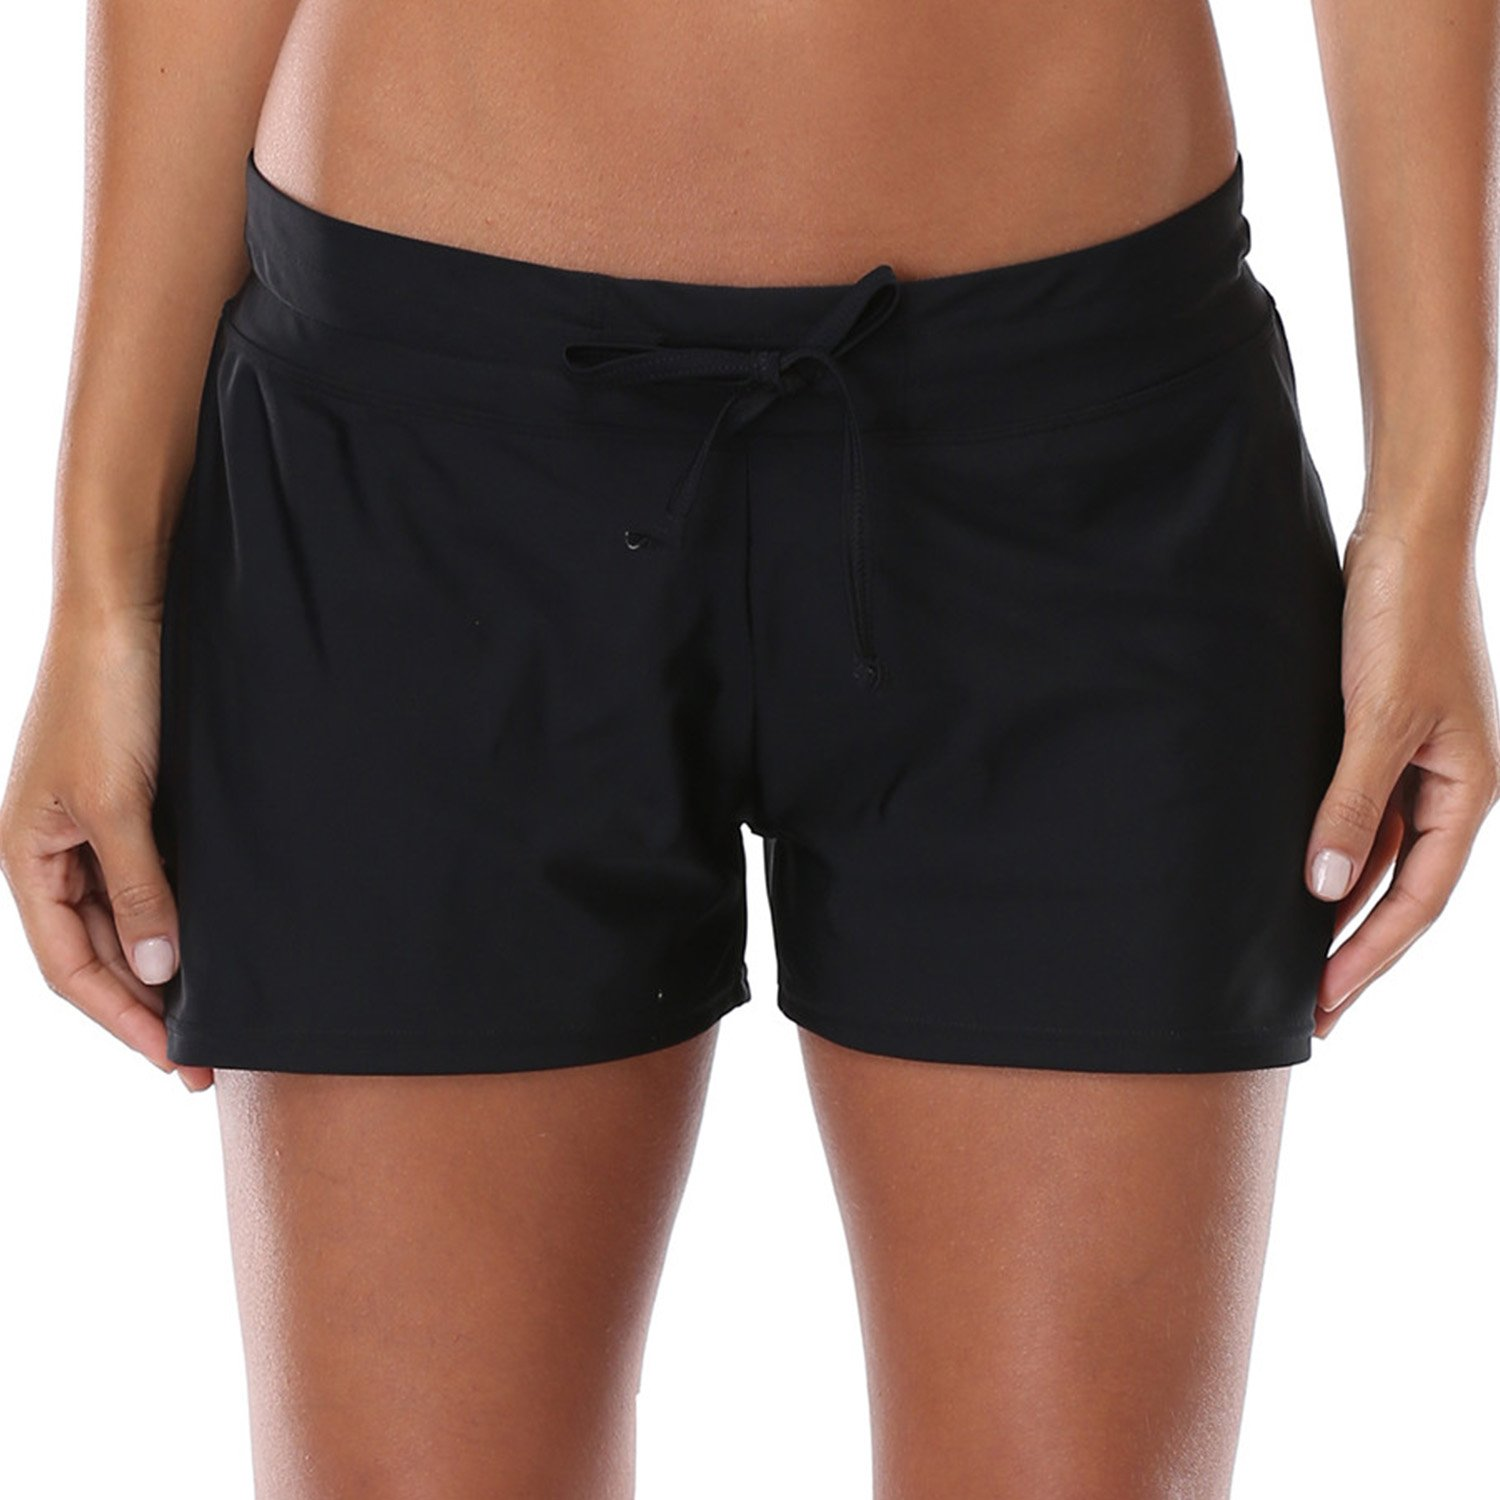 Vegatos Womens Solid Boardshorts Swimming Shorts Swim Bottoms Surfing Boyshorts Black by Vegatos (Image #2)